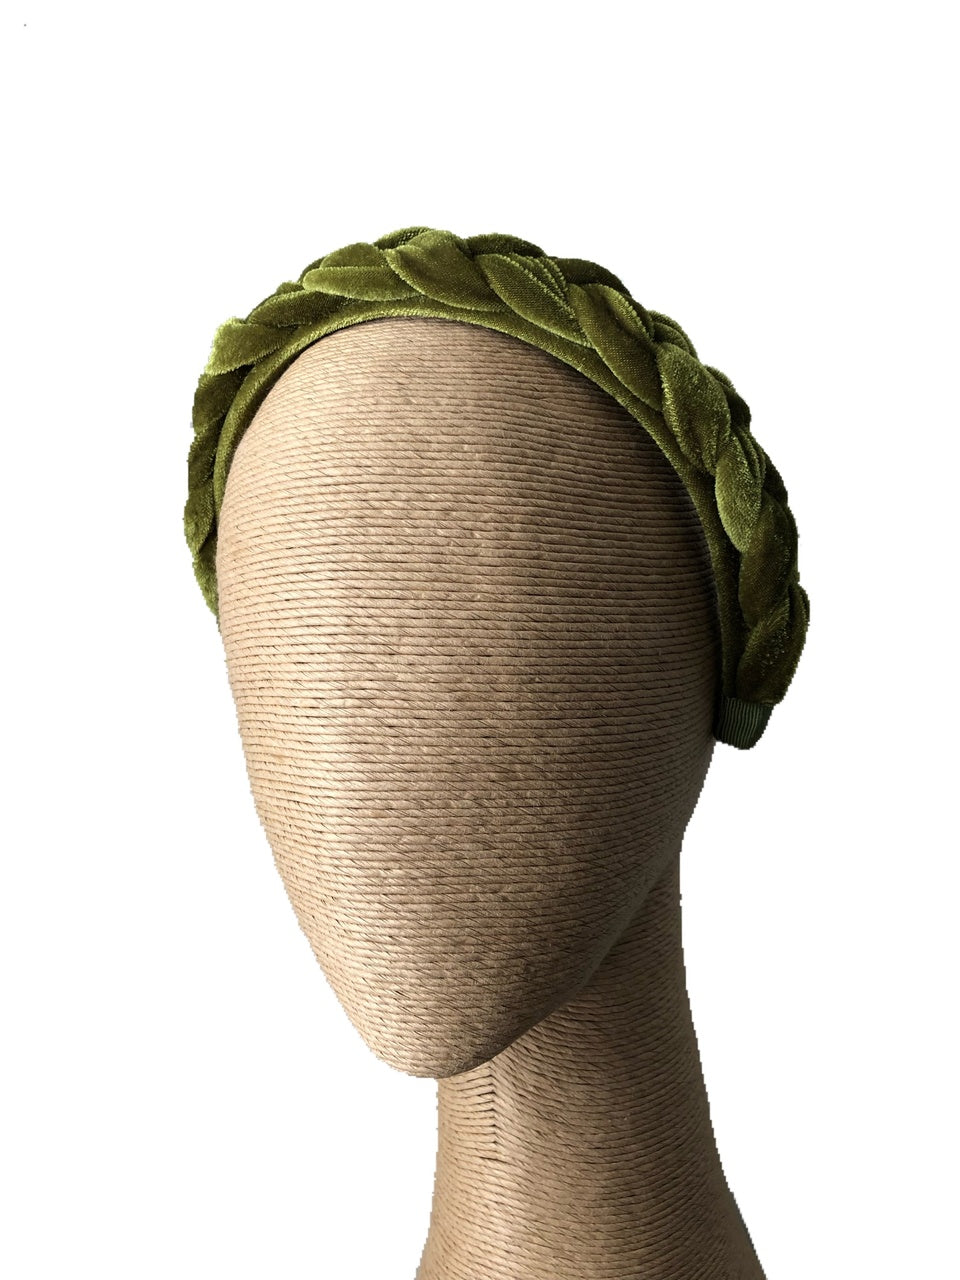 Morgan & Taylor Persia Headband in Olive